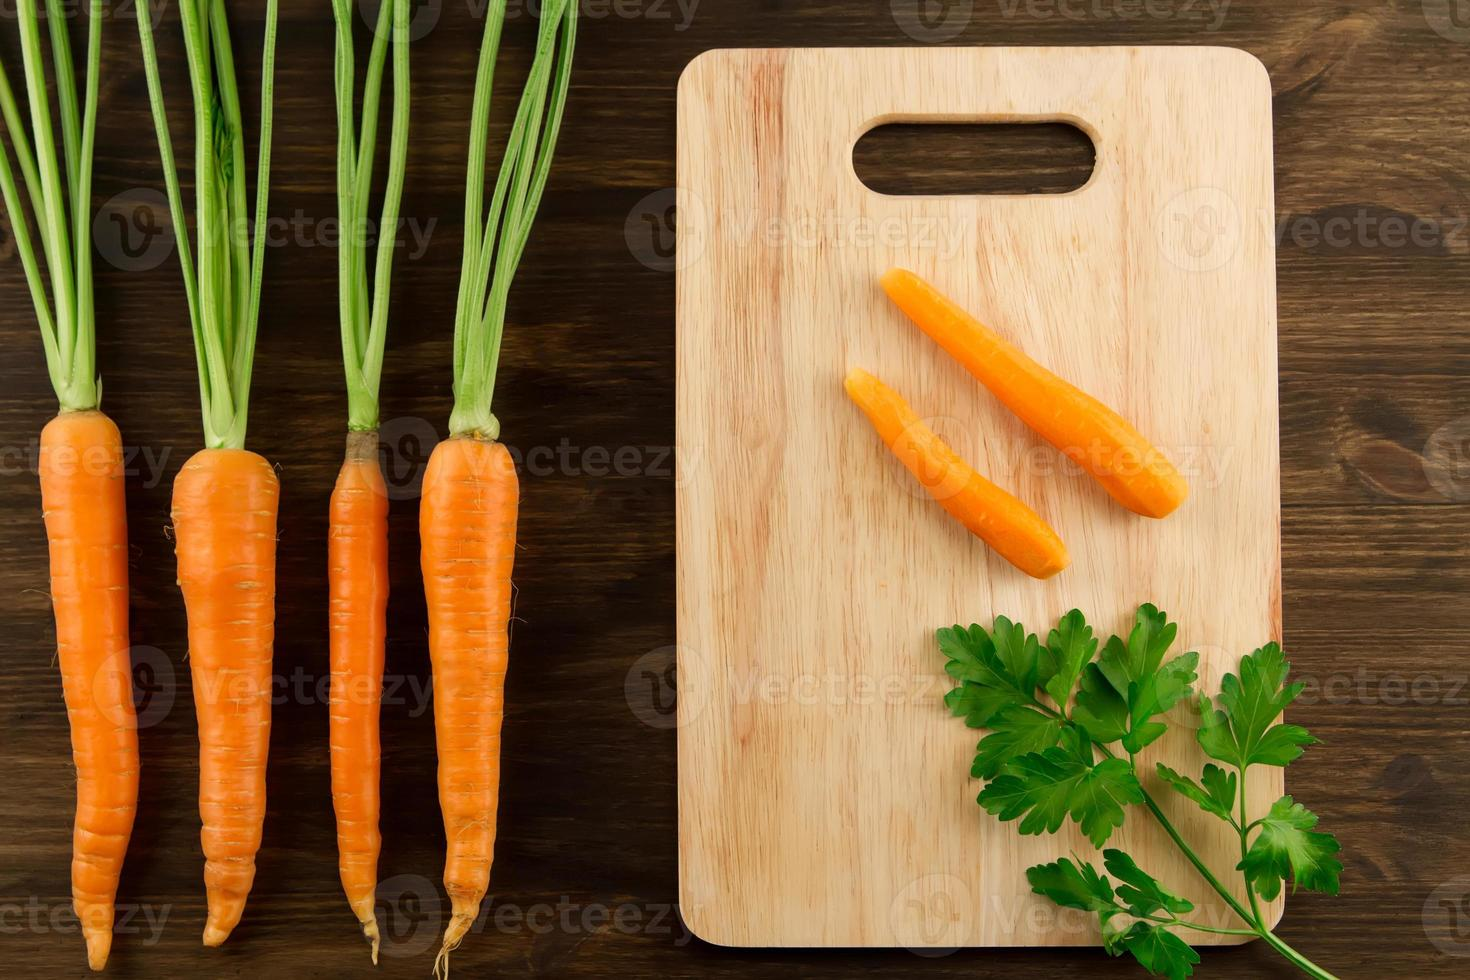 Bunch of fresh carrots with green leaves on wooden photo